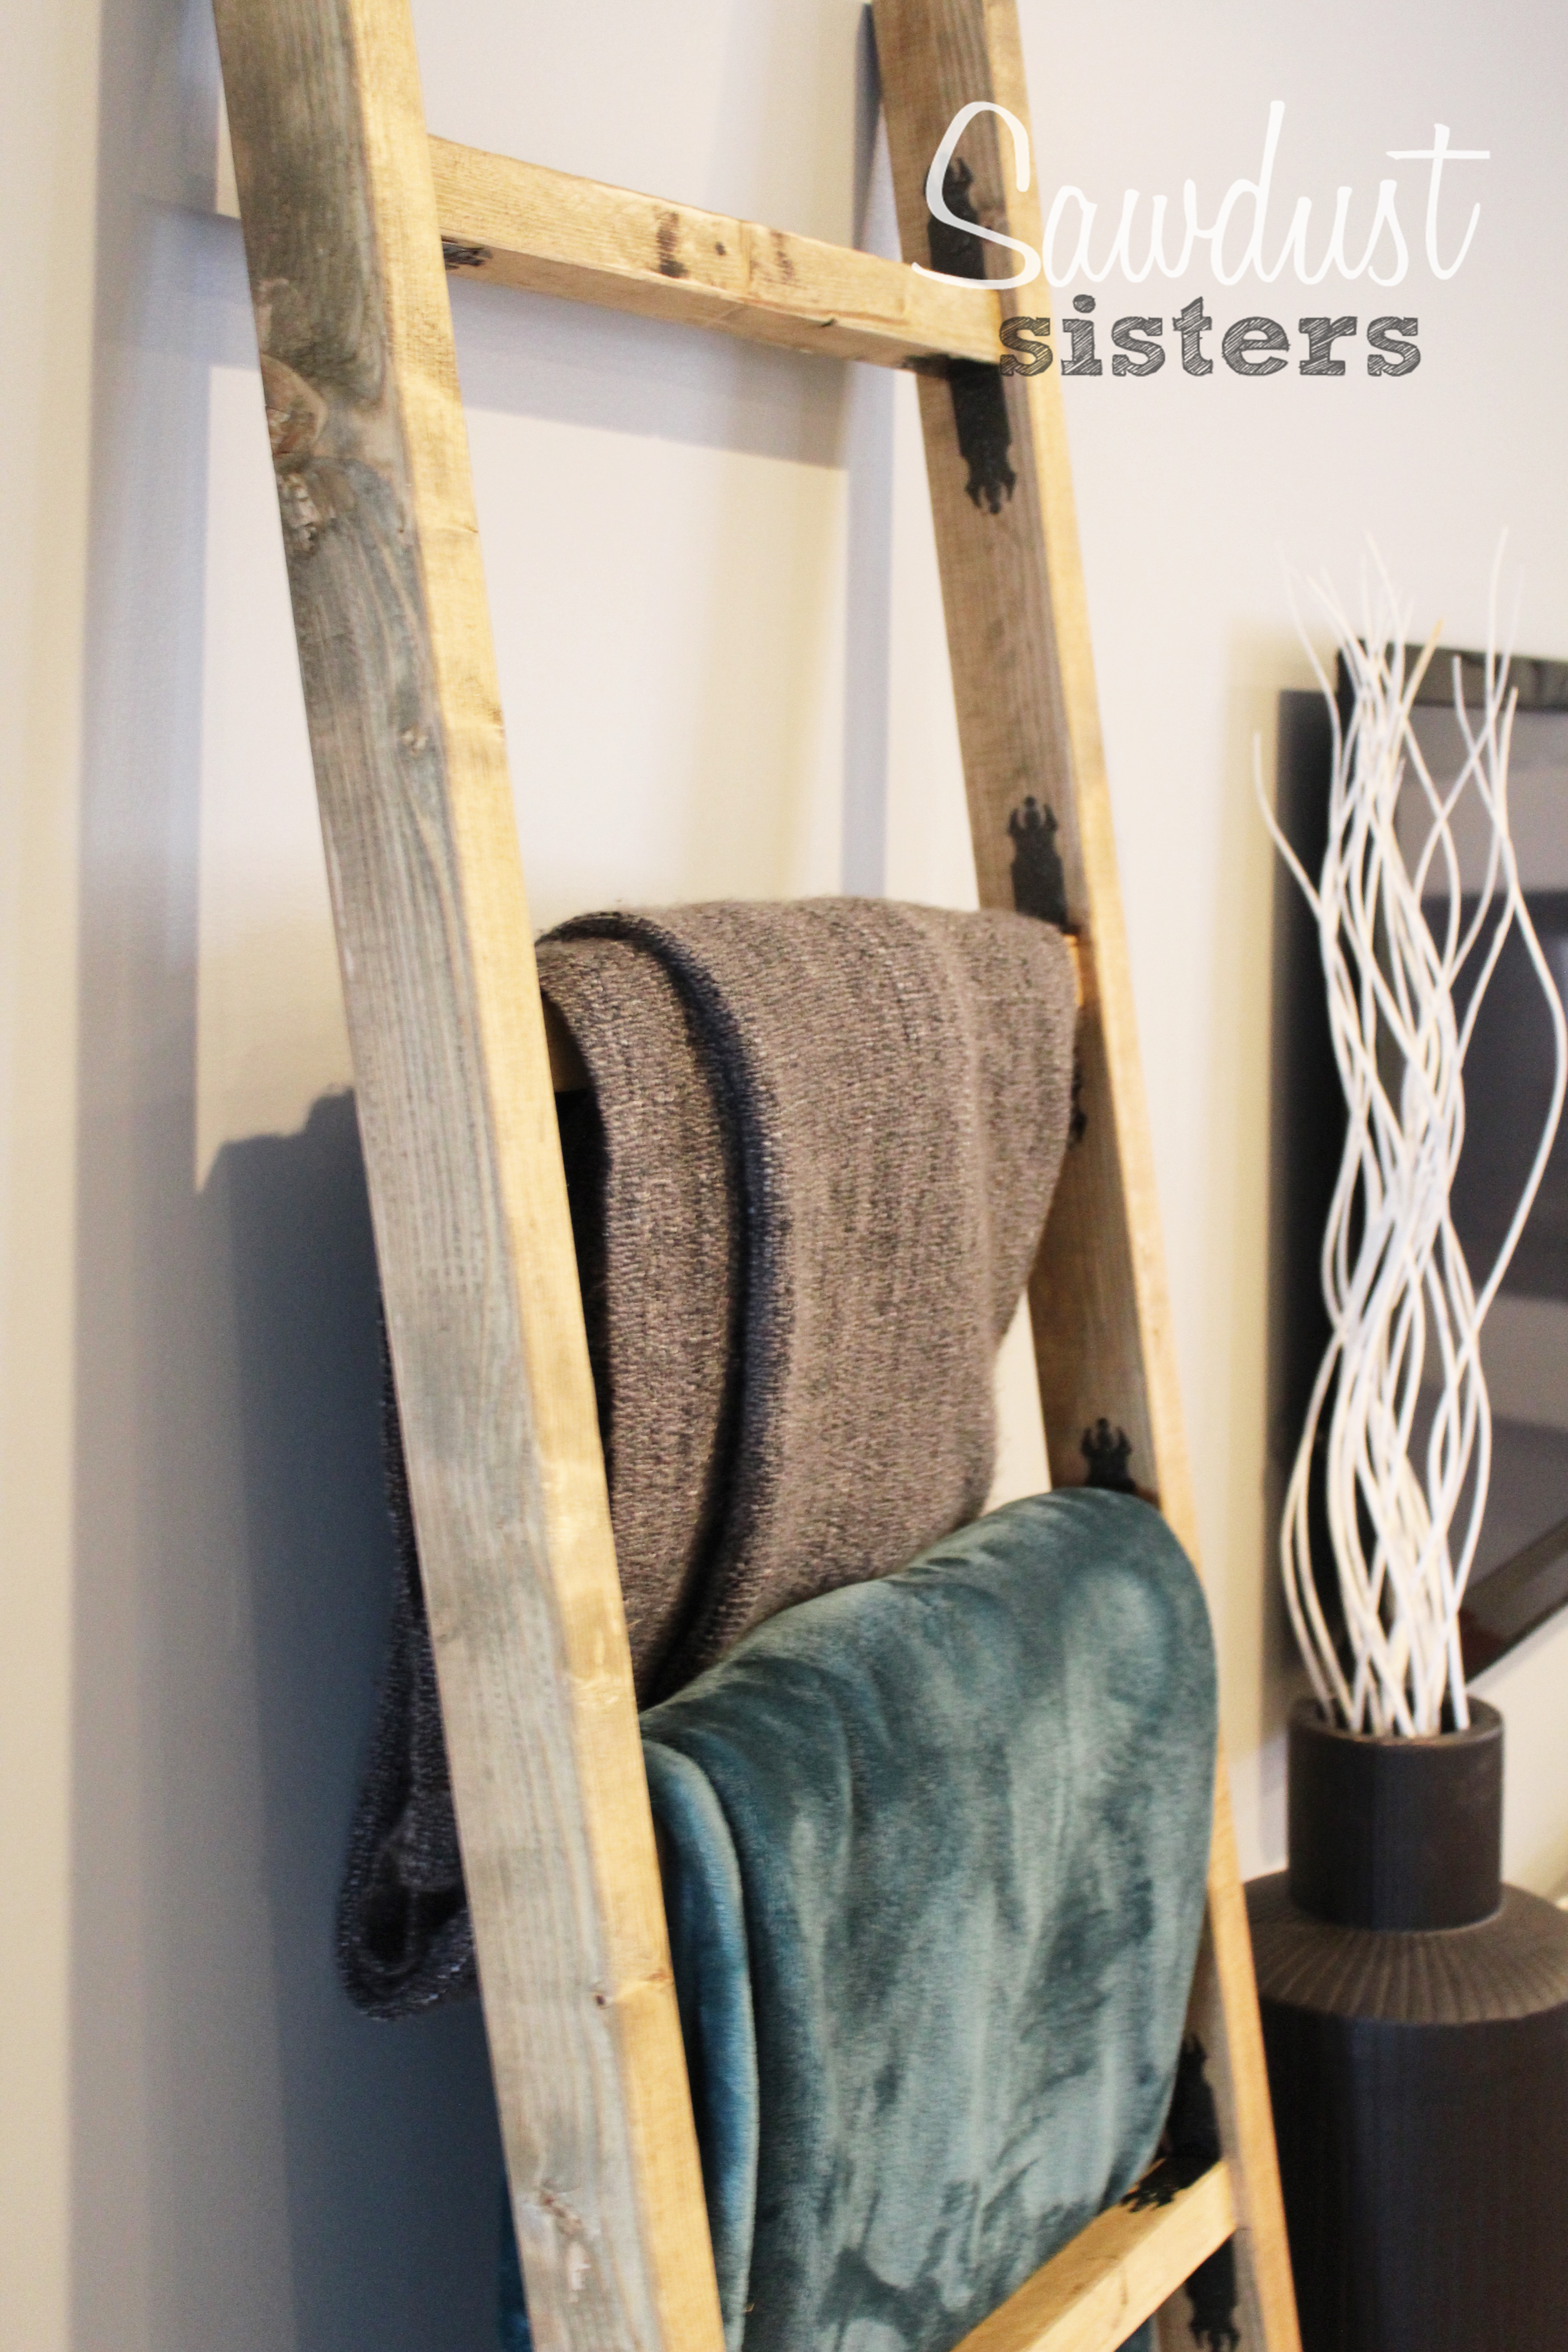 Easy Kreg Jig Projects. This blanket ladder is awesome! I need one for my den!